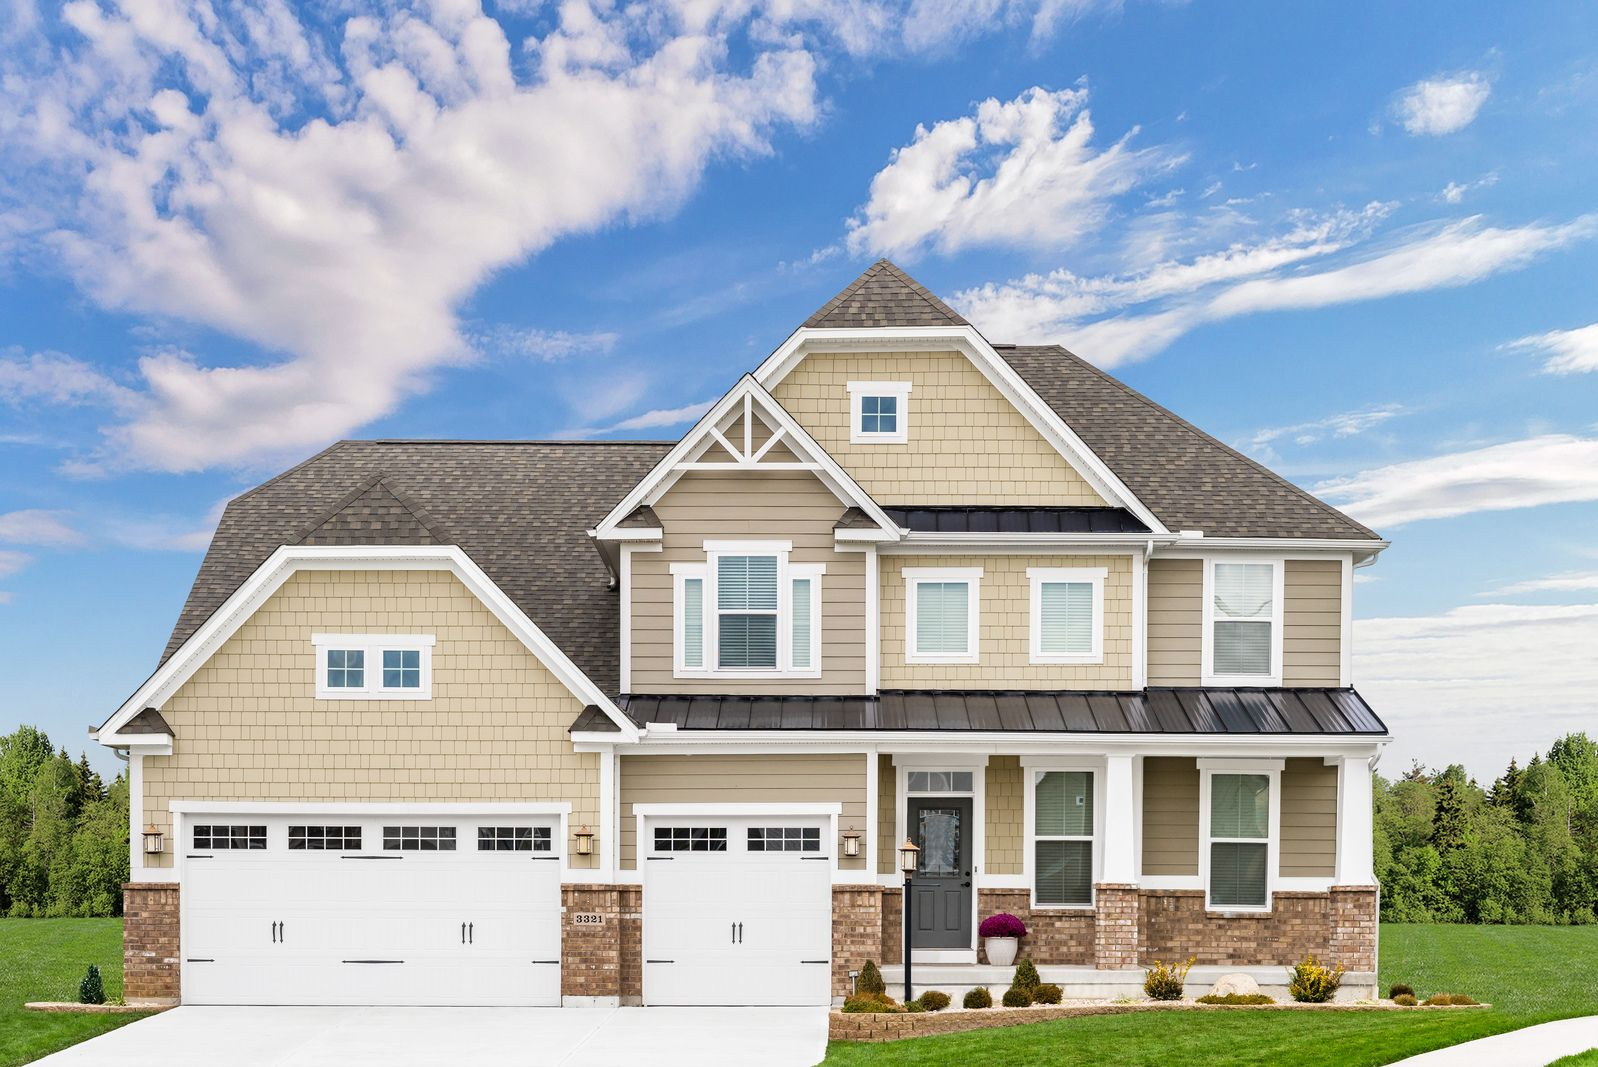 JOIN THE VILLAGES AT QUARRY VIP LIST TODAY:Ranch & 2-story golf course homes. 15-year tax abatement—low $200s!3-car garages available, community pool, clubhouse, & included lawn/snow care! Minutes to I-77 & Belden.Click to join the VIP List!